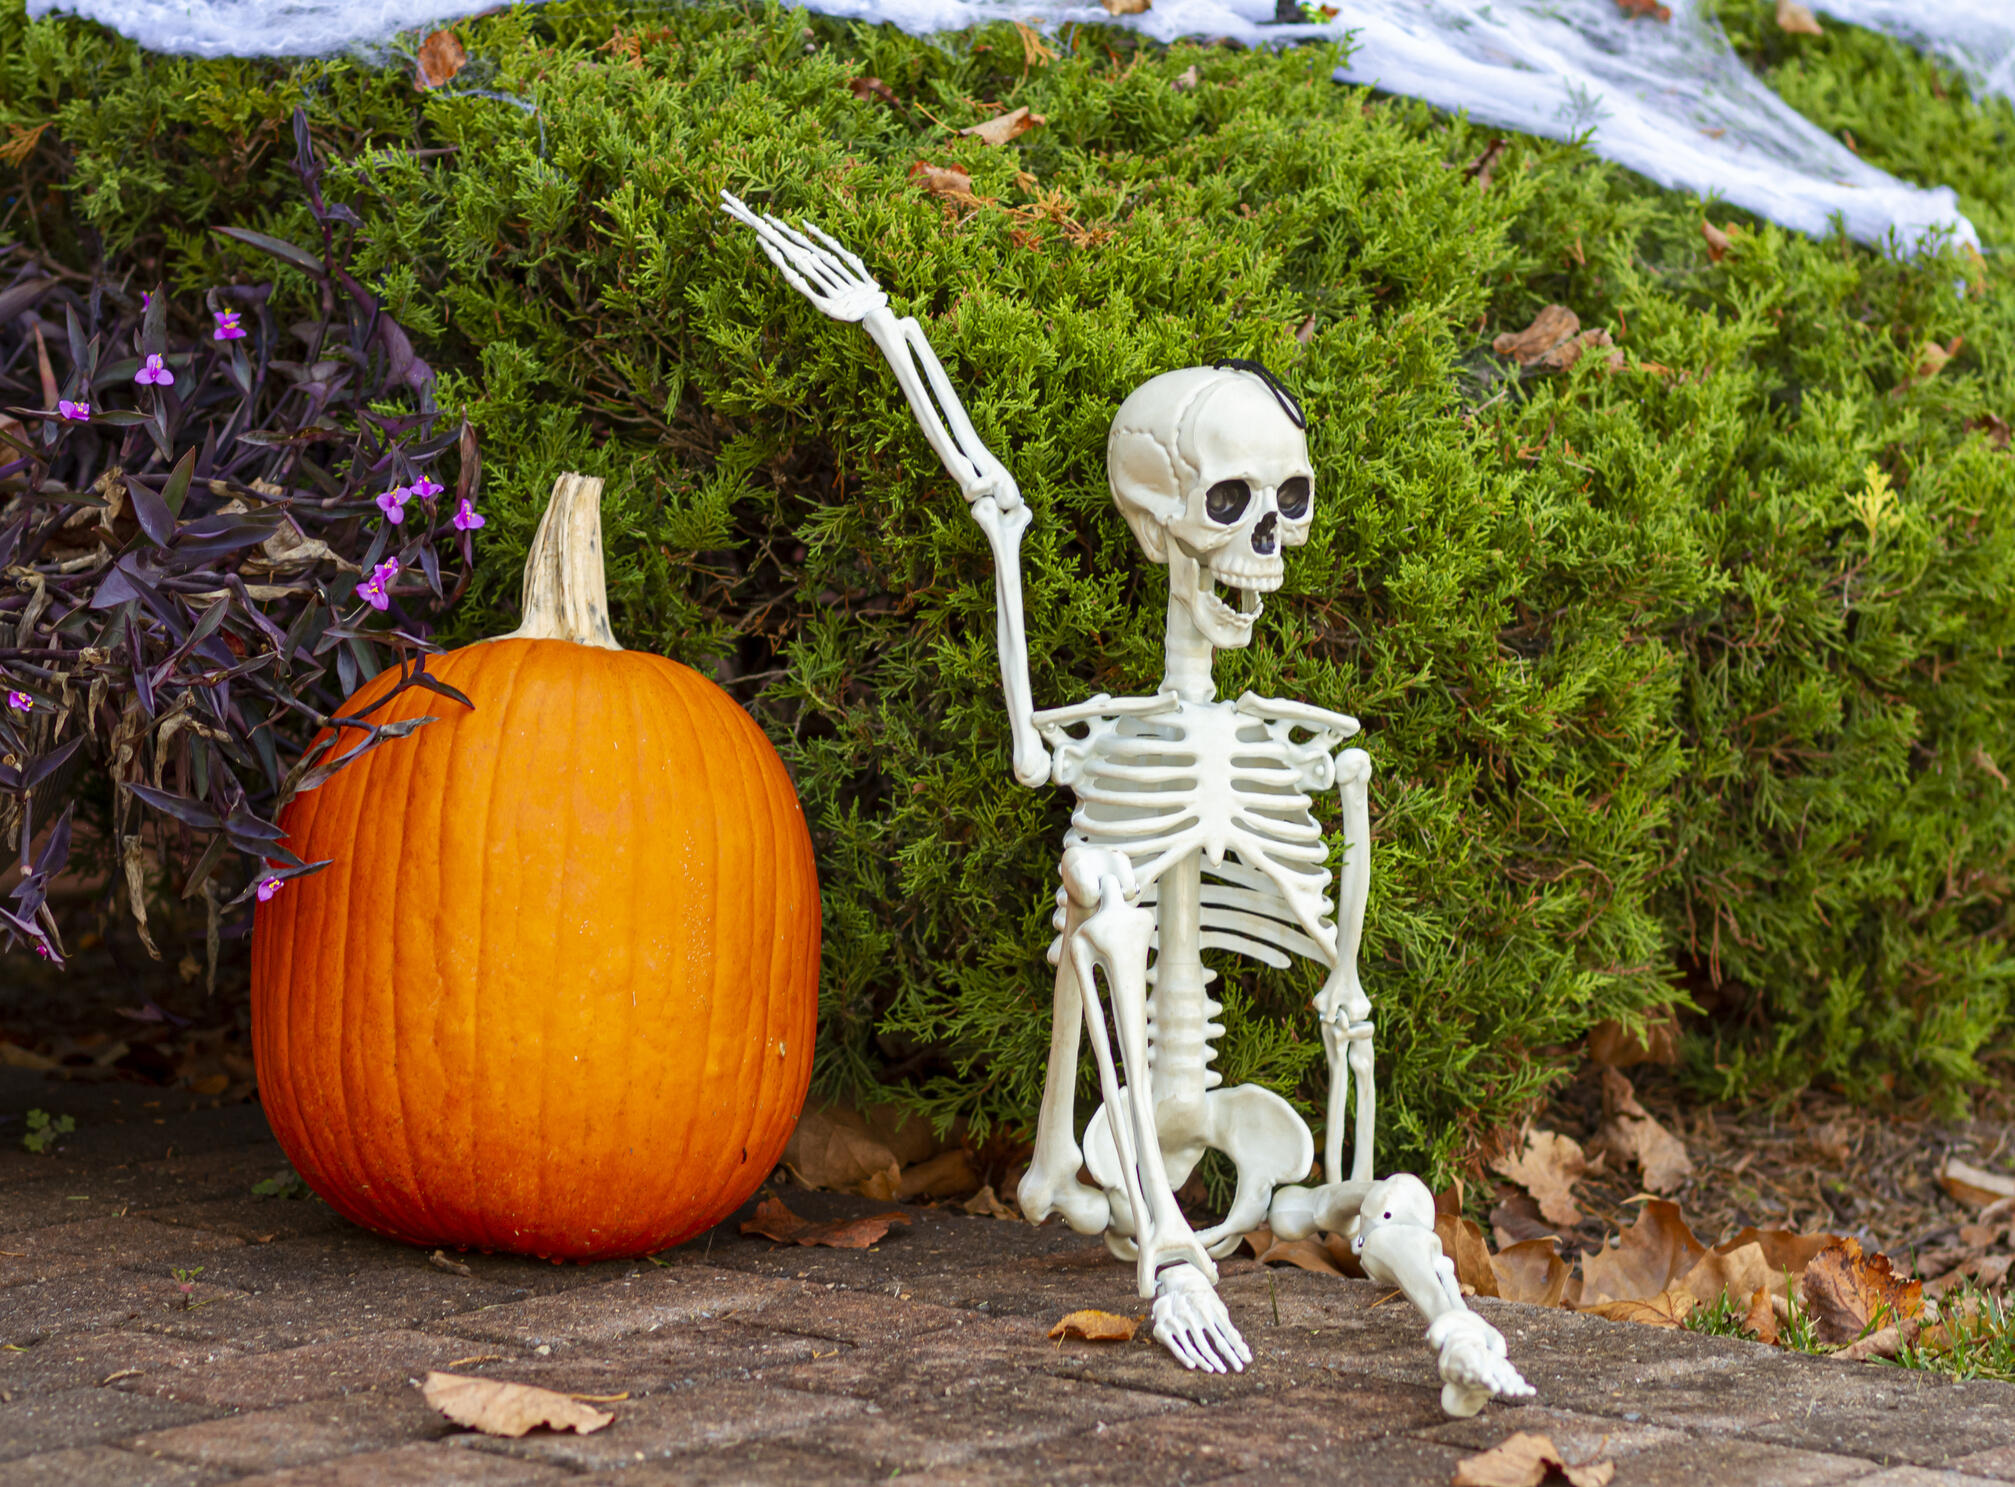 People Are Turning Their Home Depot Skeletons into Christmas Decorations